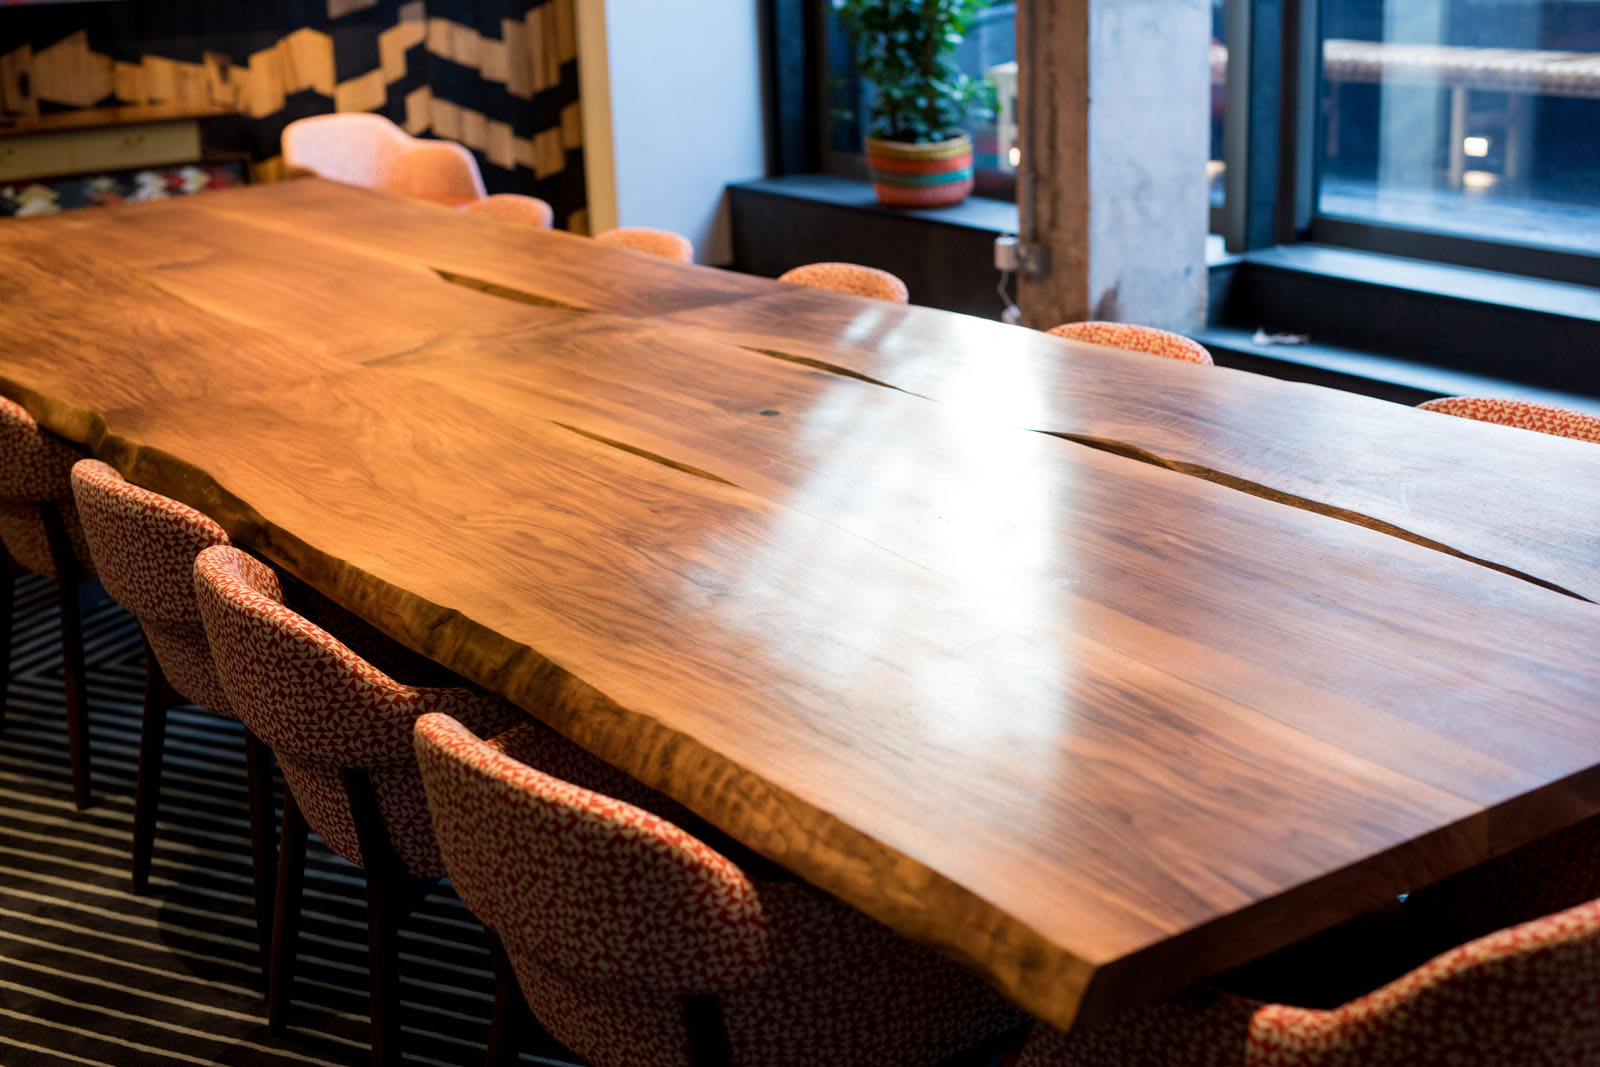 Bespoke Boardroom Table for Nando's Head Office